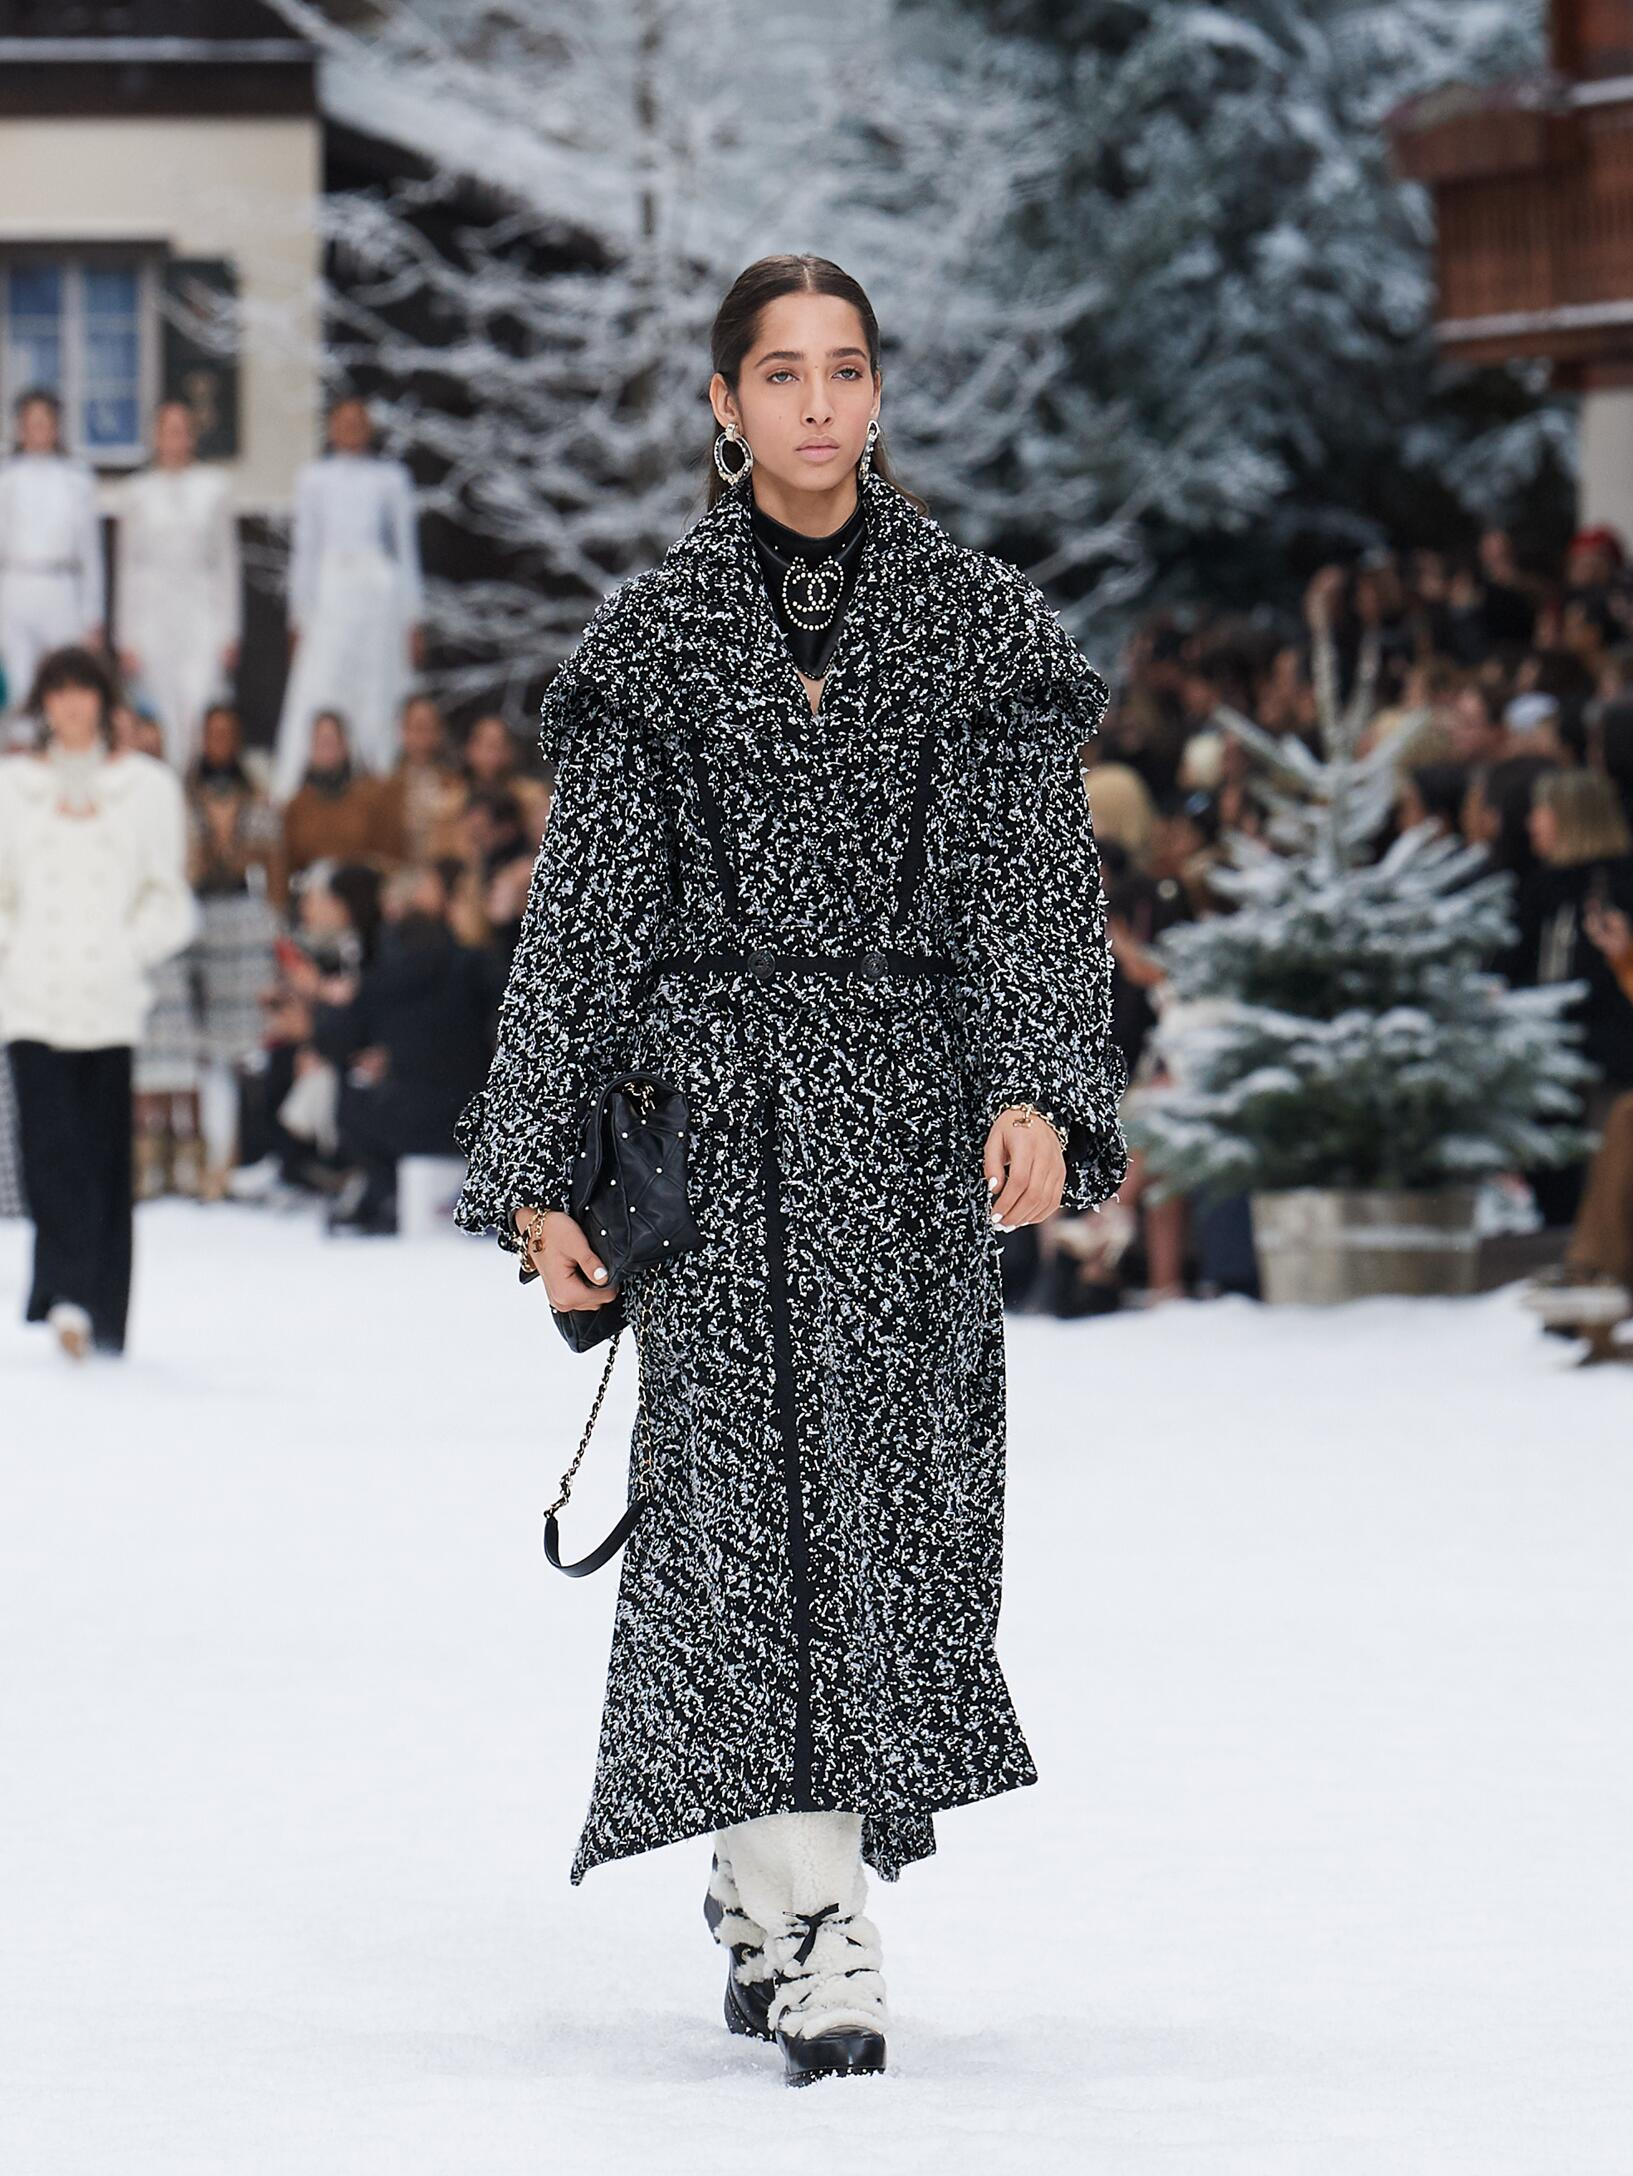 chanel fall winter 2019 women's collection  the skinny beep